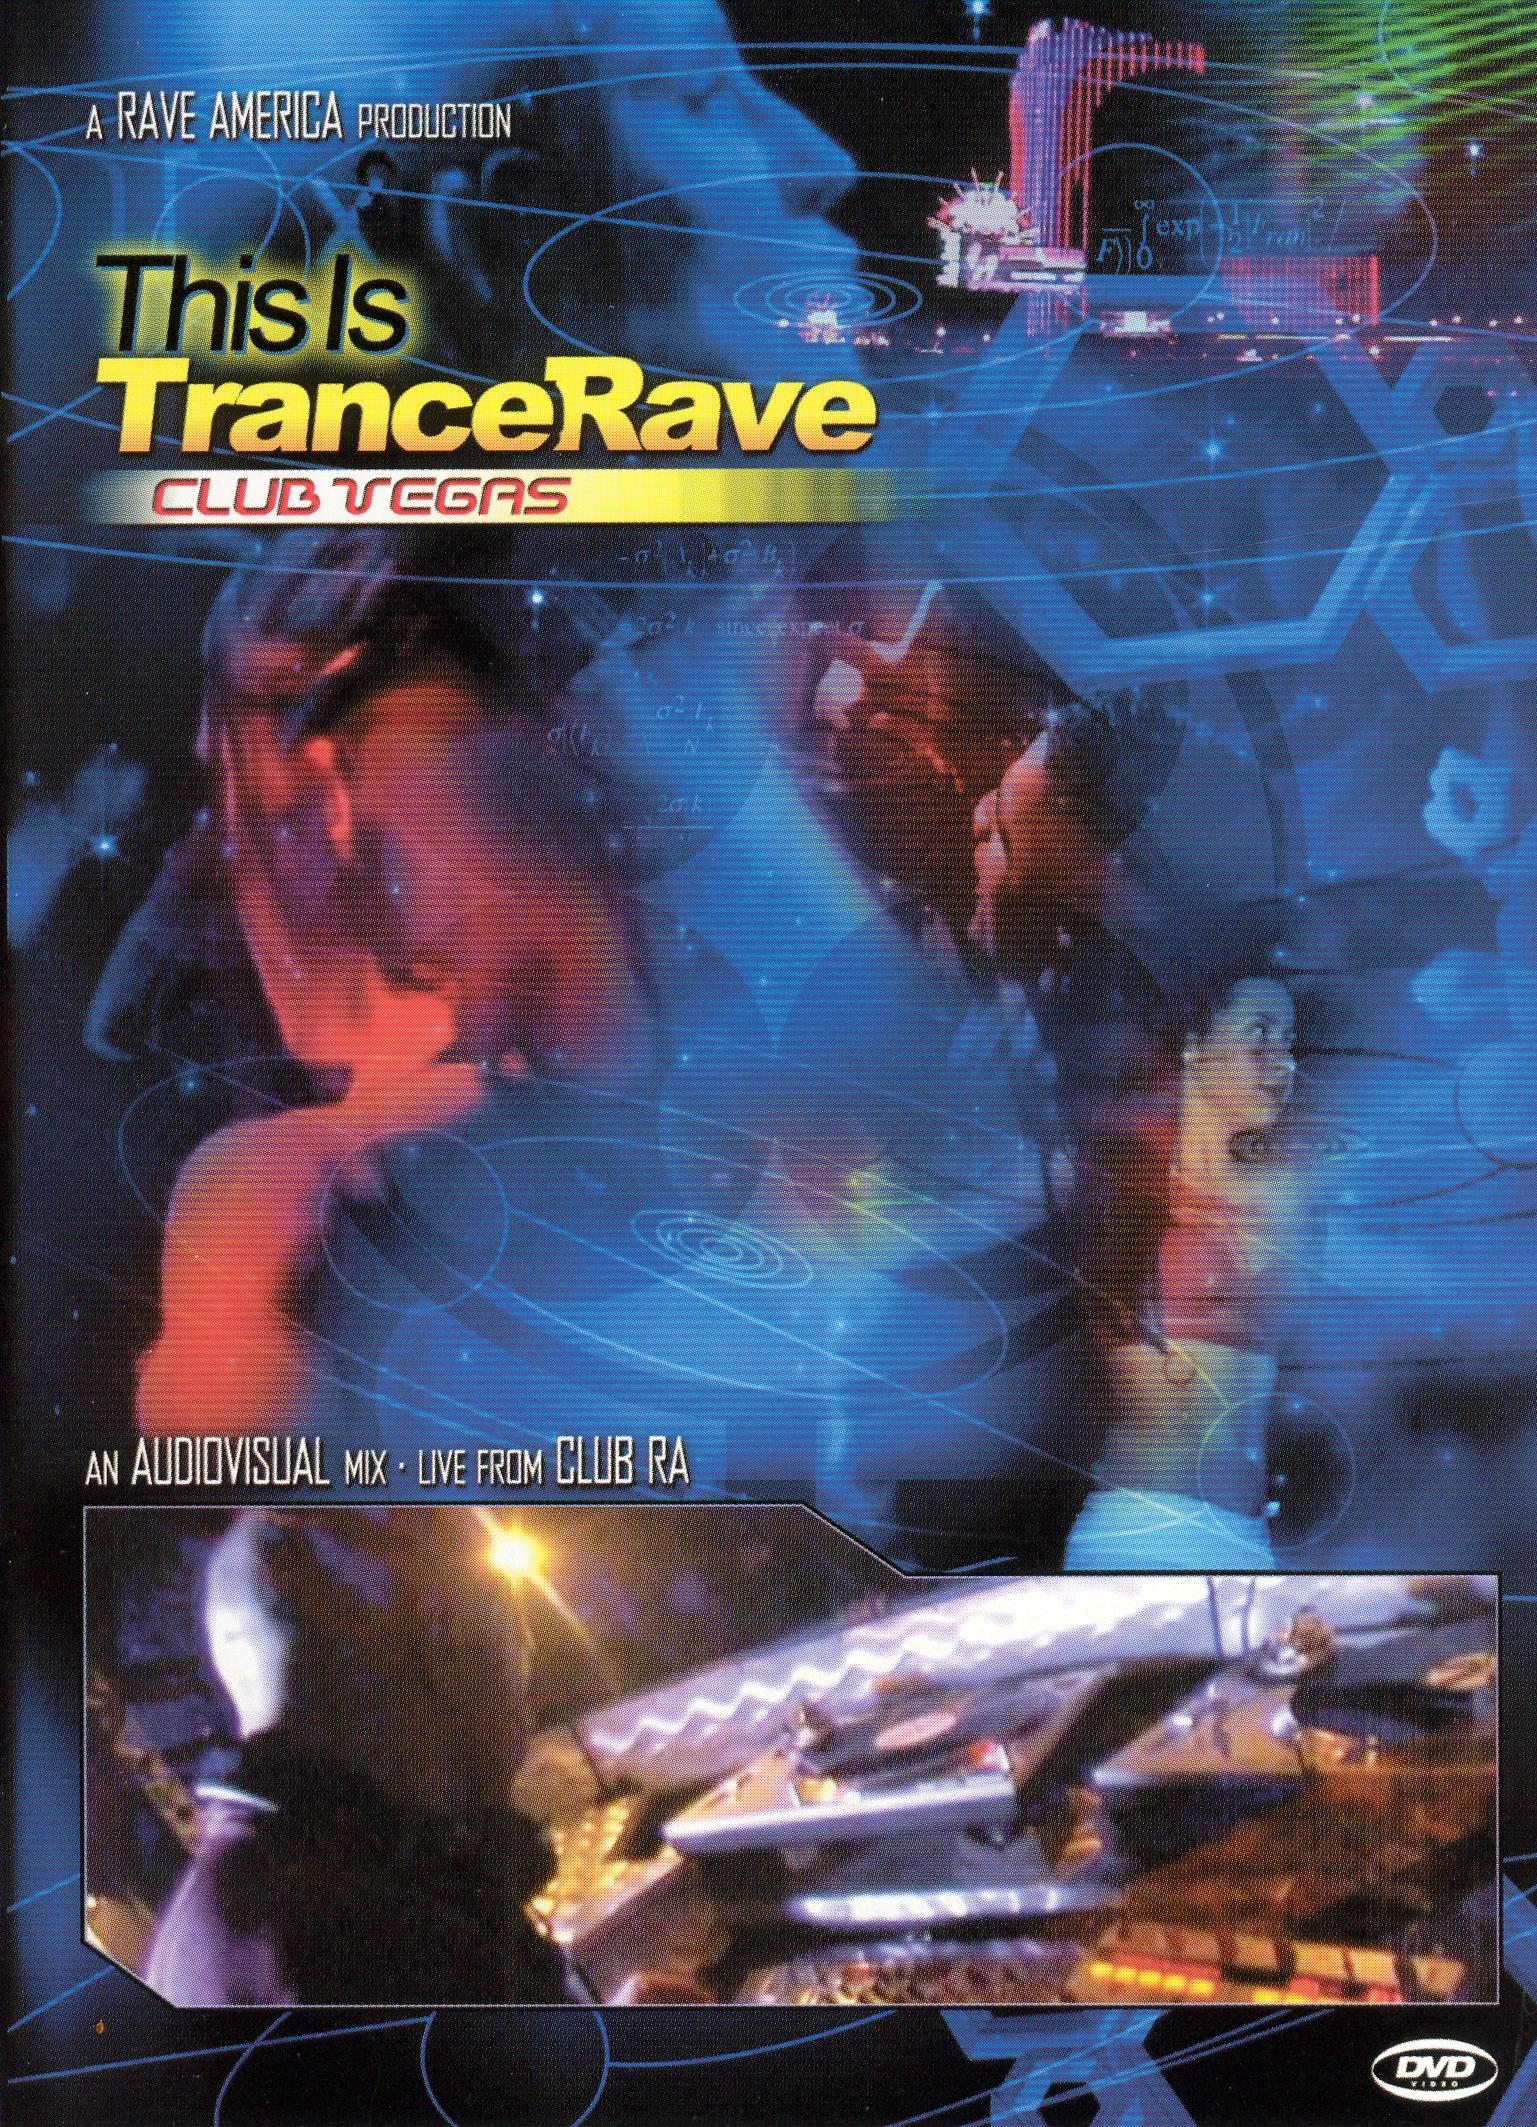 This Is Trance Rave: Club Vegas